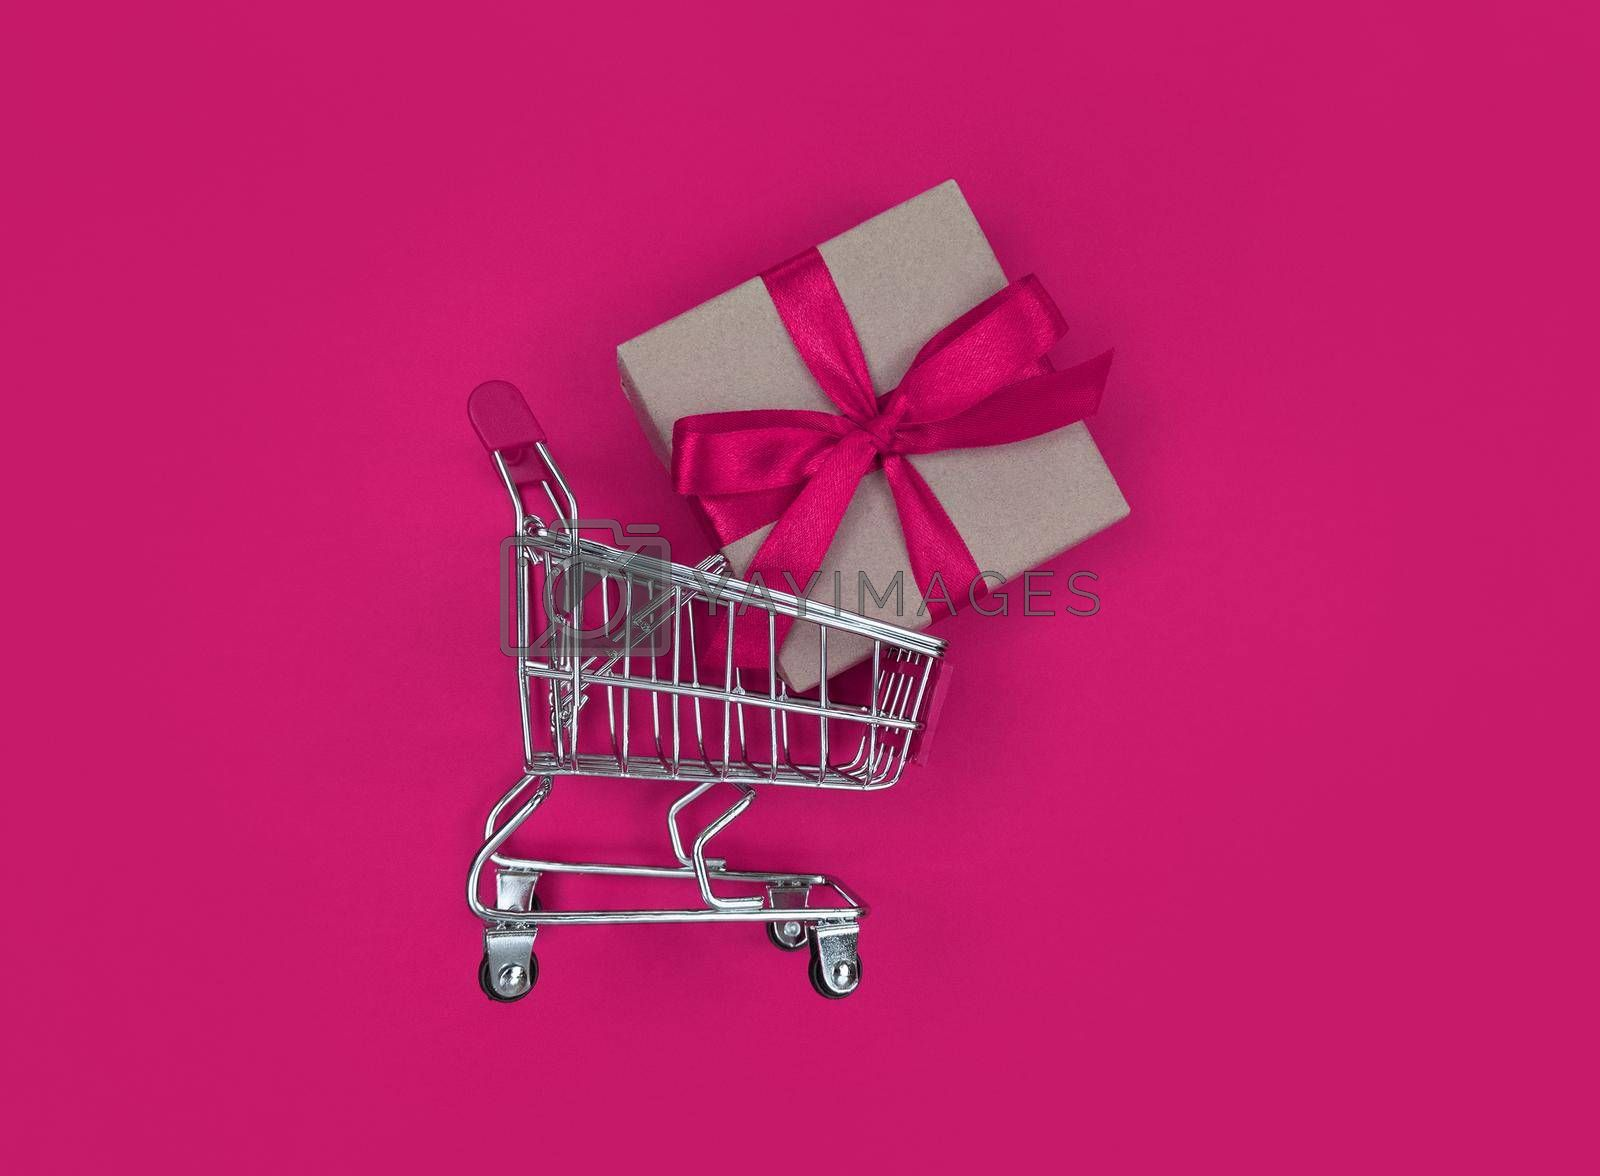 Supermarket trolley and gift box on a pink background. Shopping concept.